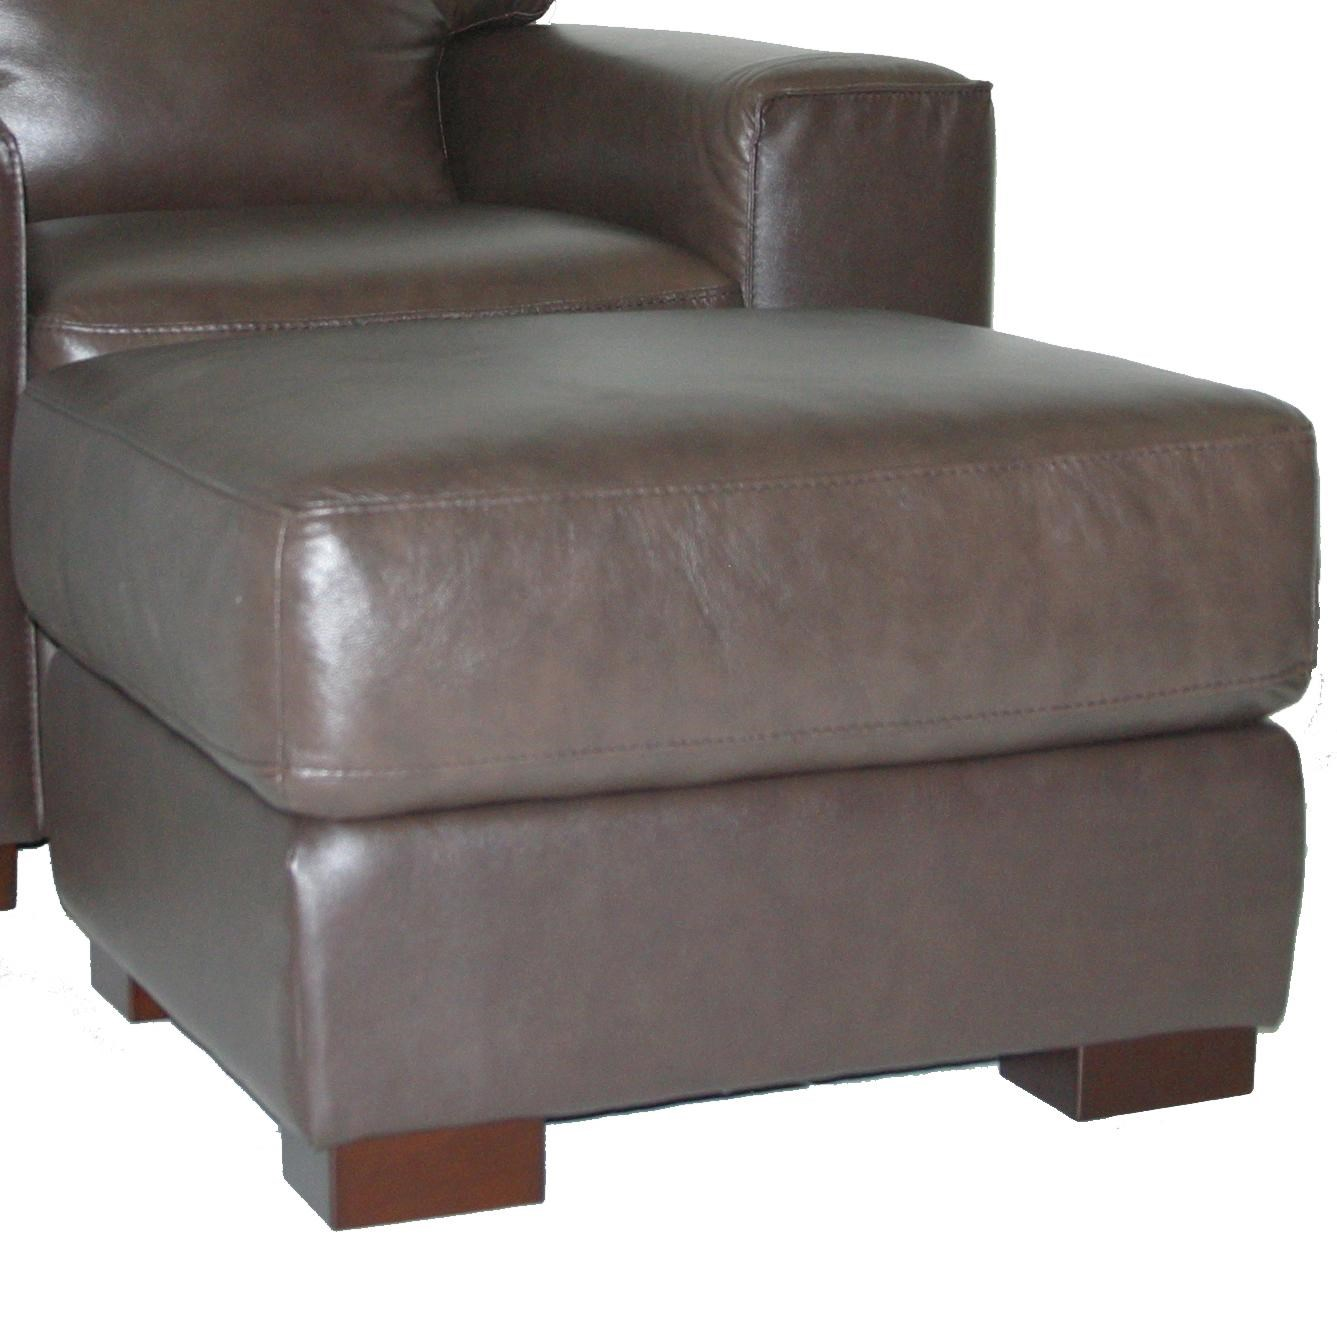 30480 Contemporary Ottoman With Block Feet By Violino